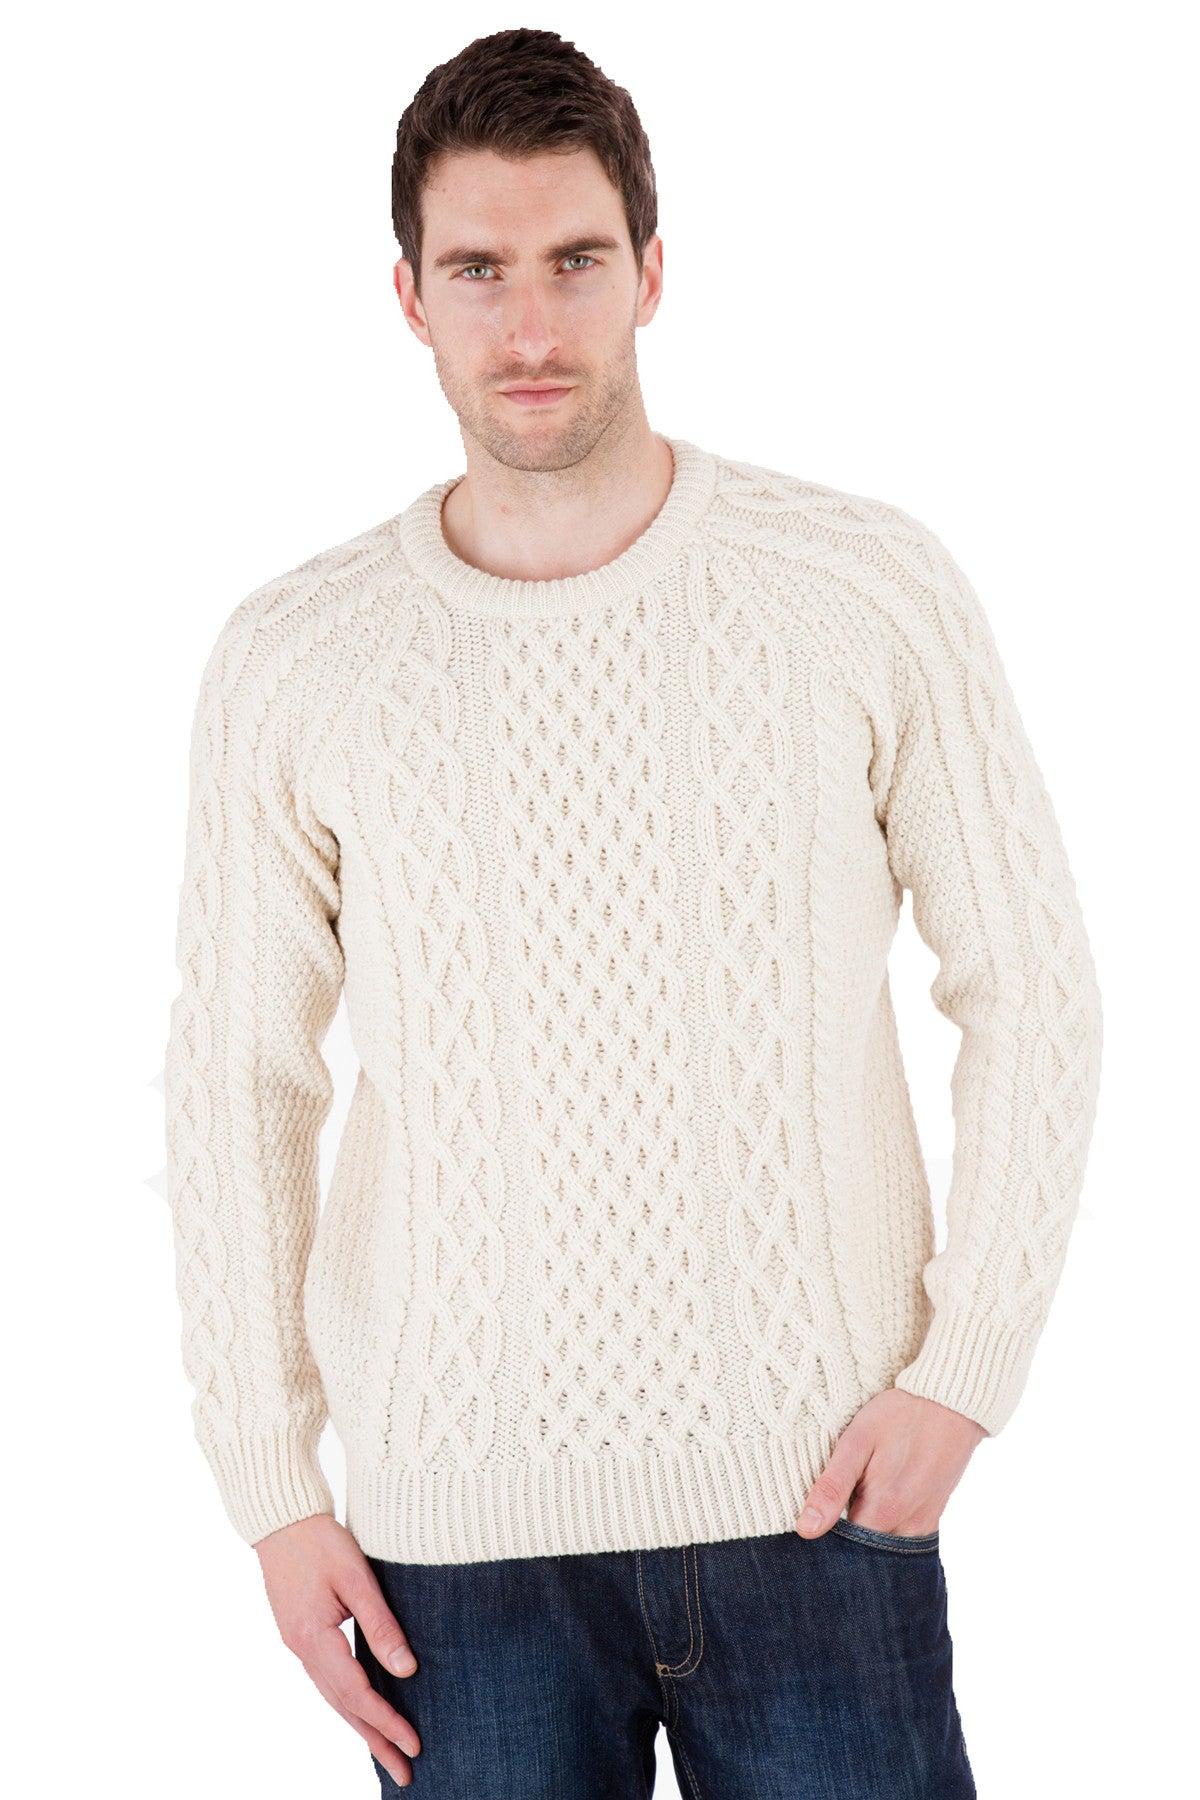 Mitchell   Aran Jumper Sweater   Pure Merino Wool